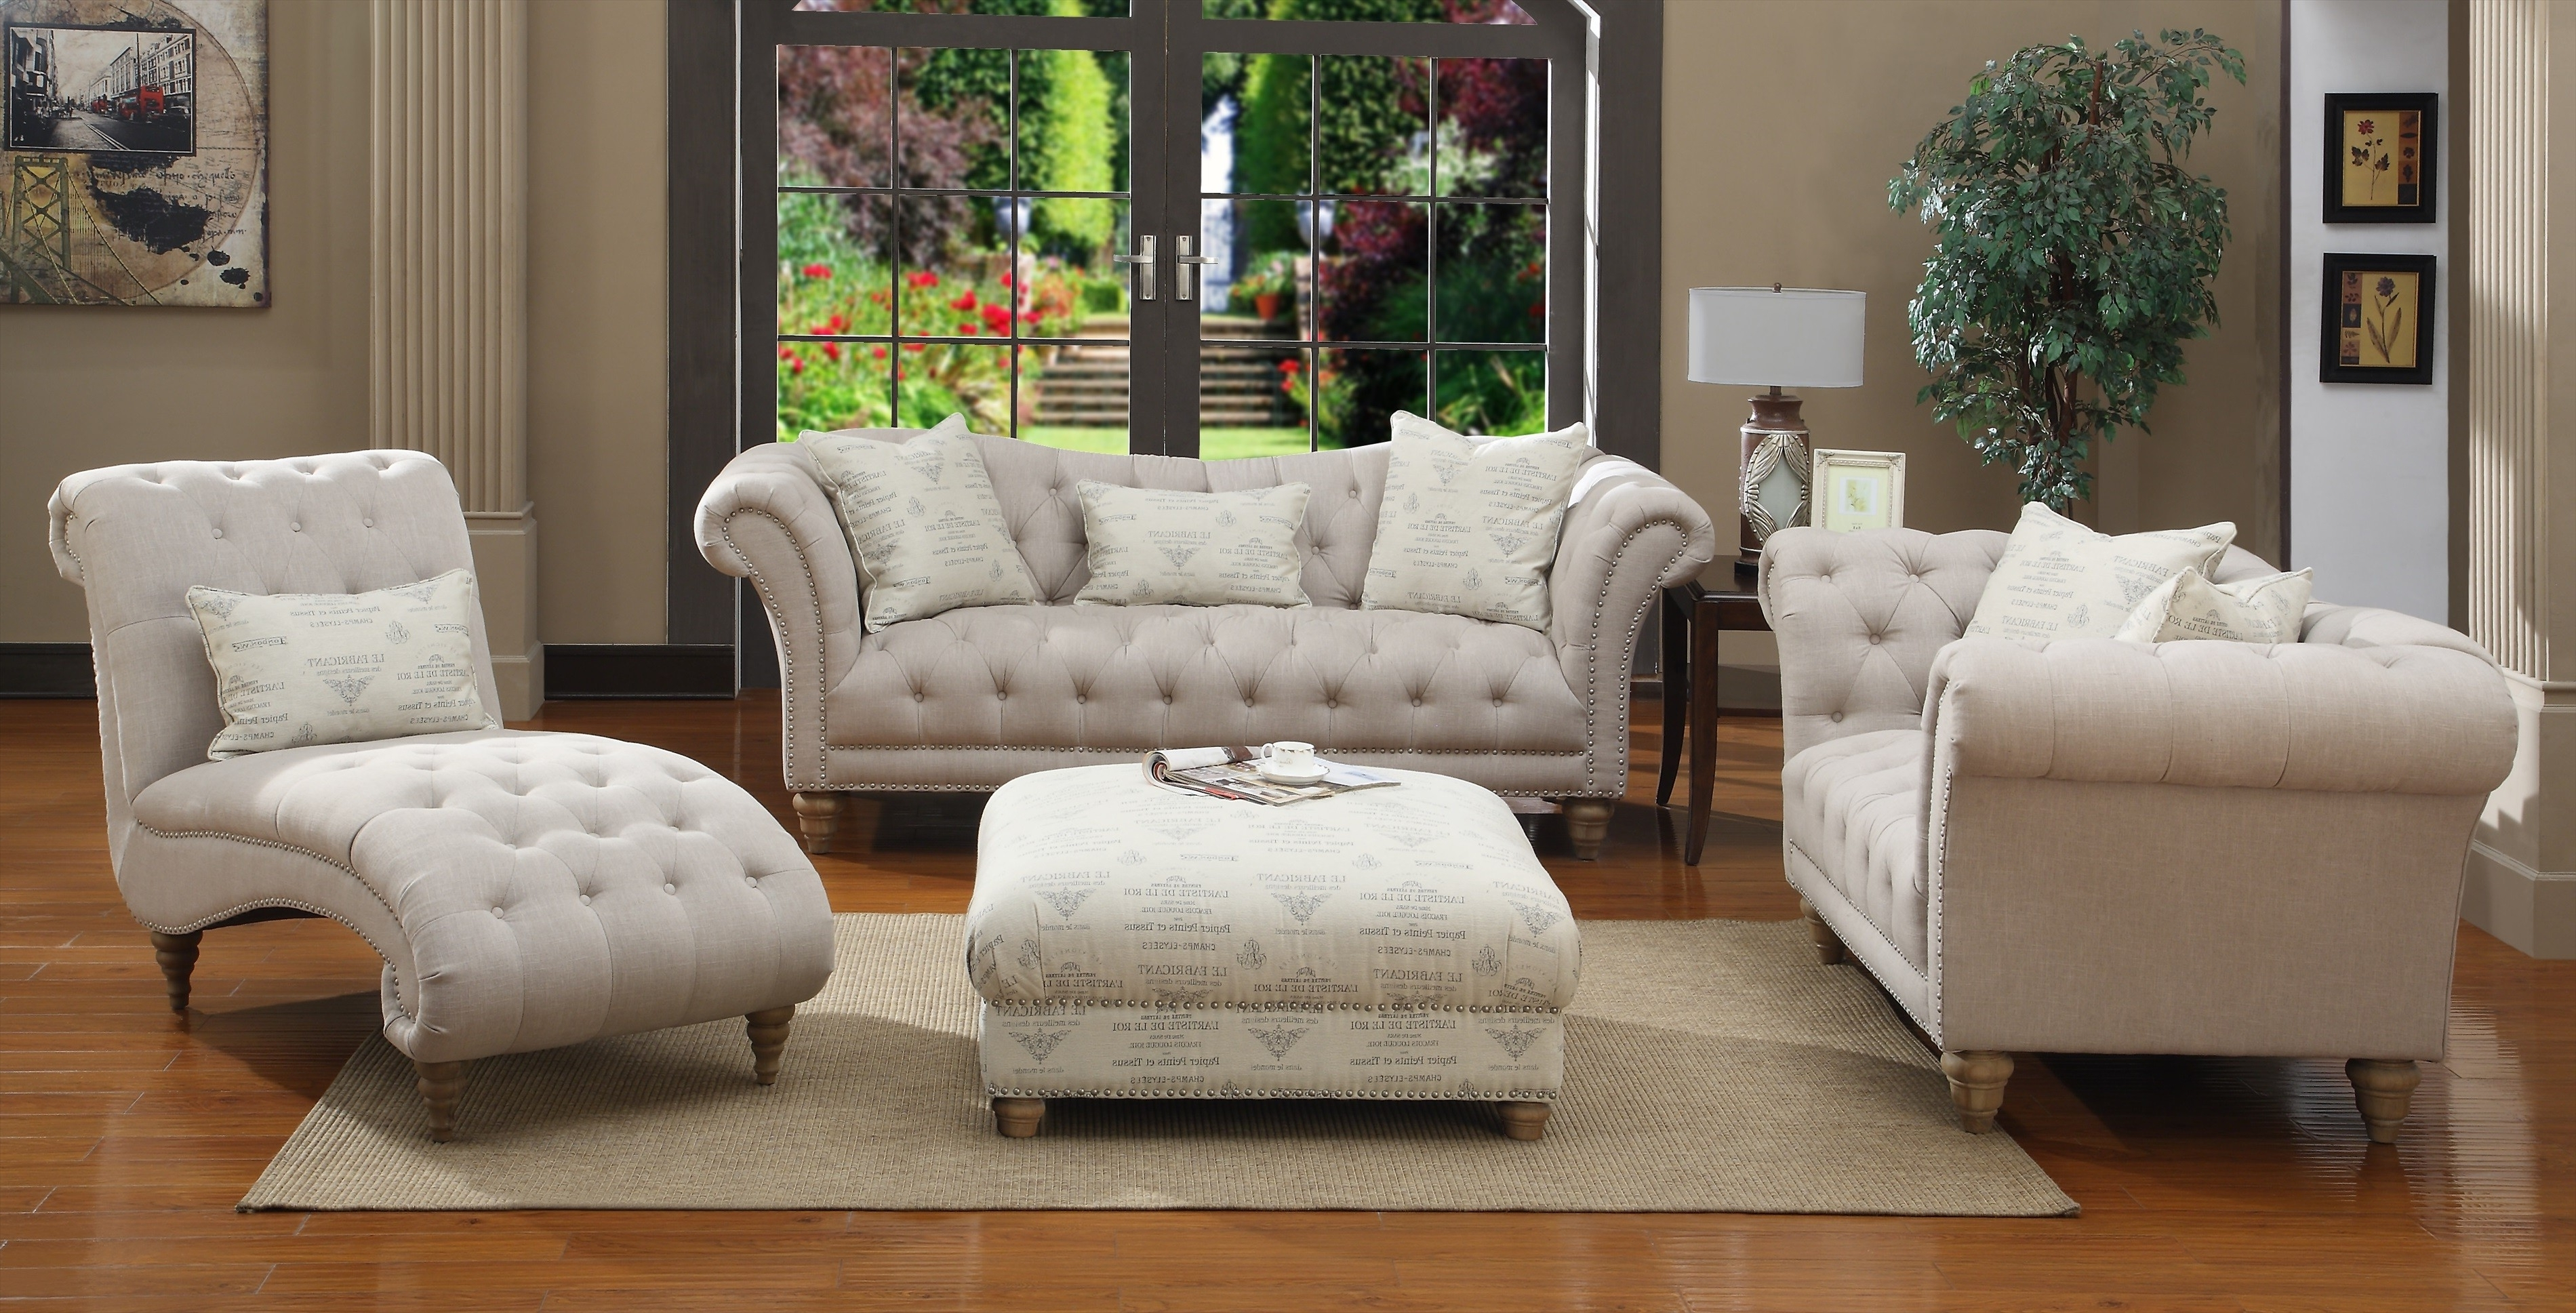 Living Room : Large Chaise Lounge Living Room Sets With Oversized In Widely Used Living Room Chaises (View 10 of 15)